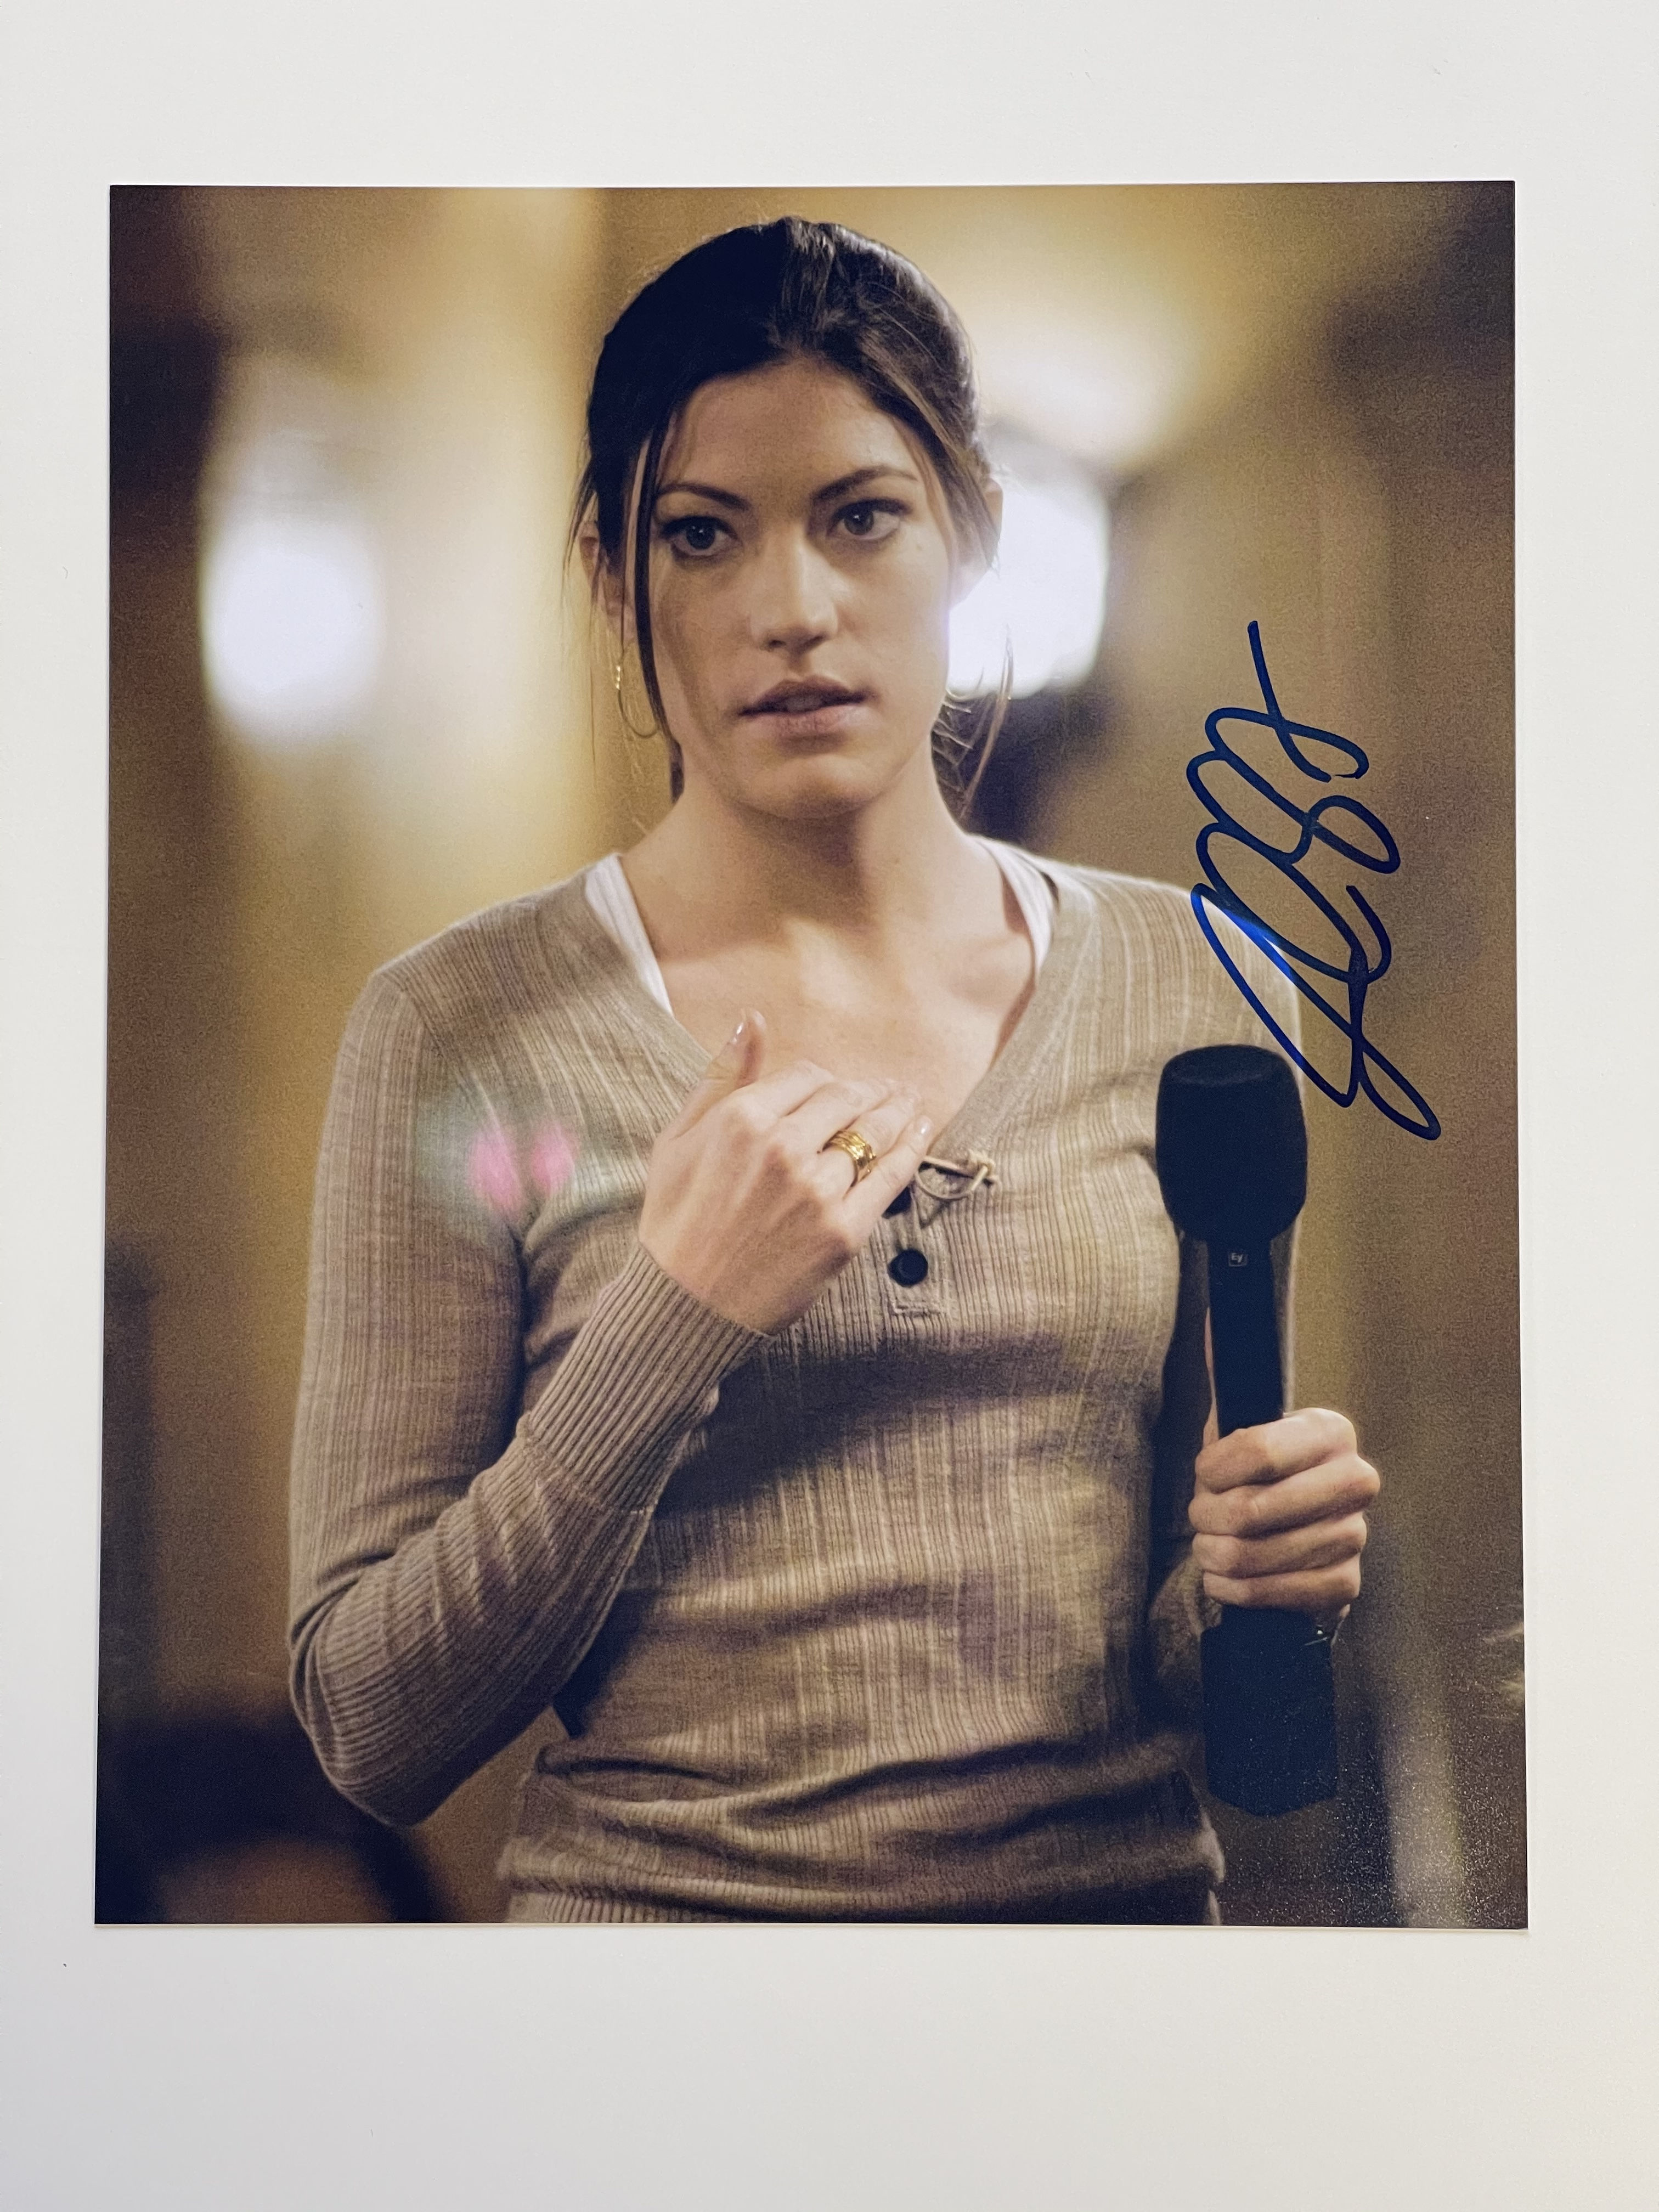 Jennifer Carpenter - 10 EUR Aktion - Original Autogramm auf Foto 20x25cm